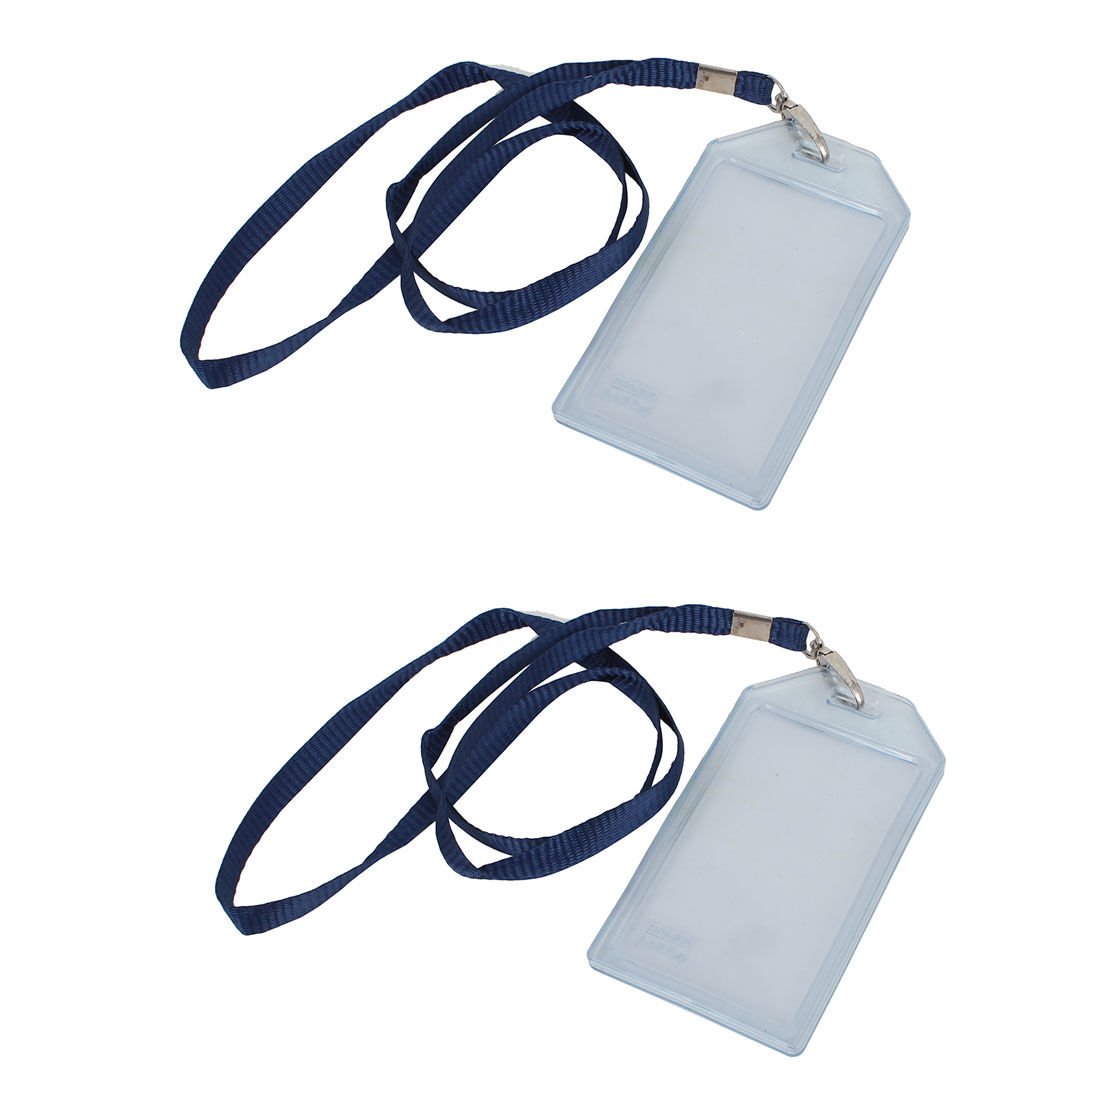 Office Factory Plastic Name ID Card Container w Blue Nylon Lanyard Clear 2 Pcs